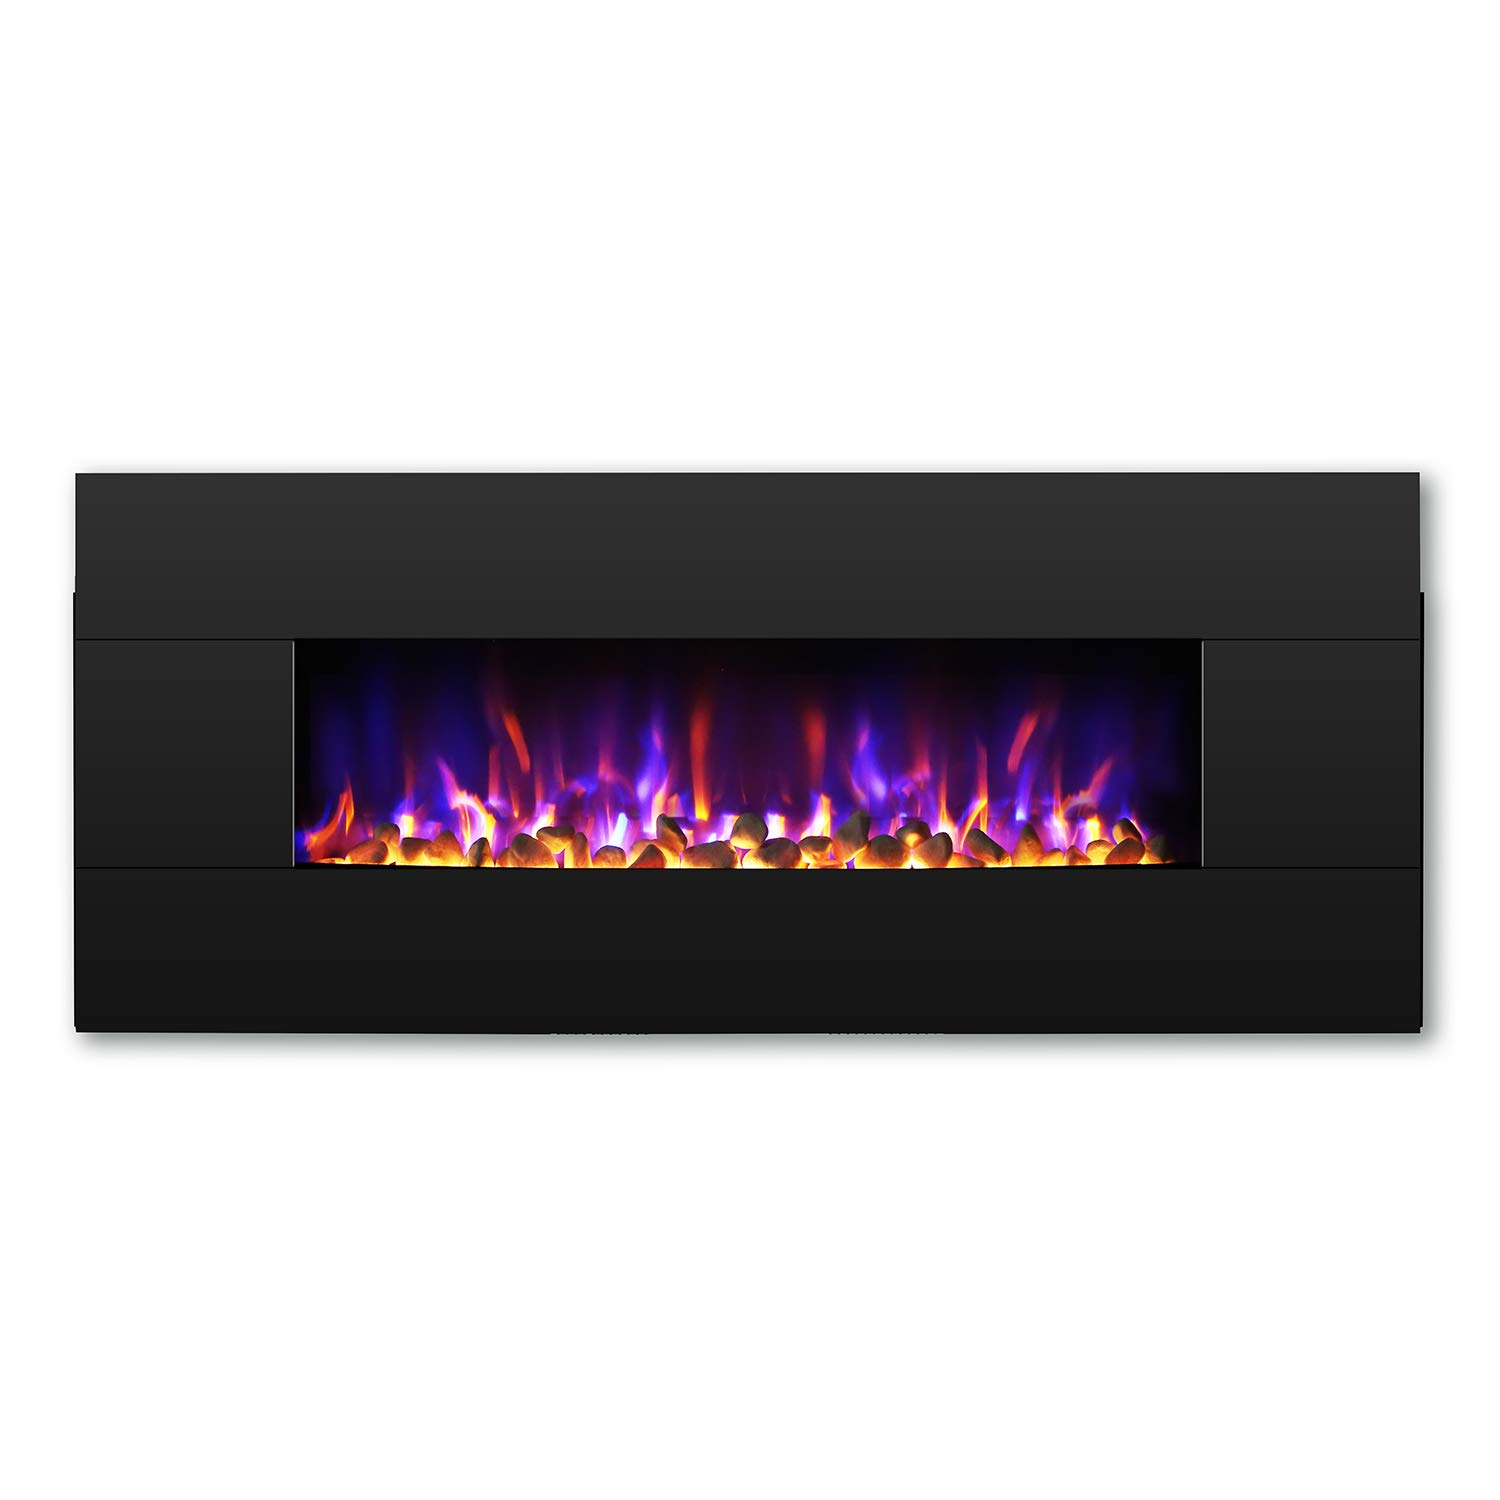 Brilliant Turbro Reflektor 42 1400W Electric Fireplace Wall Mounted Freestanding Fireplace Heater With Reversible Solid Wood Facade 7 Color Lighting Flame Best Image Libraries Barepthycampuscom